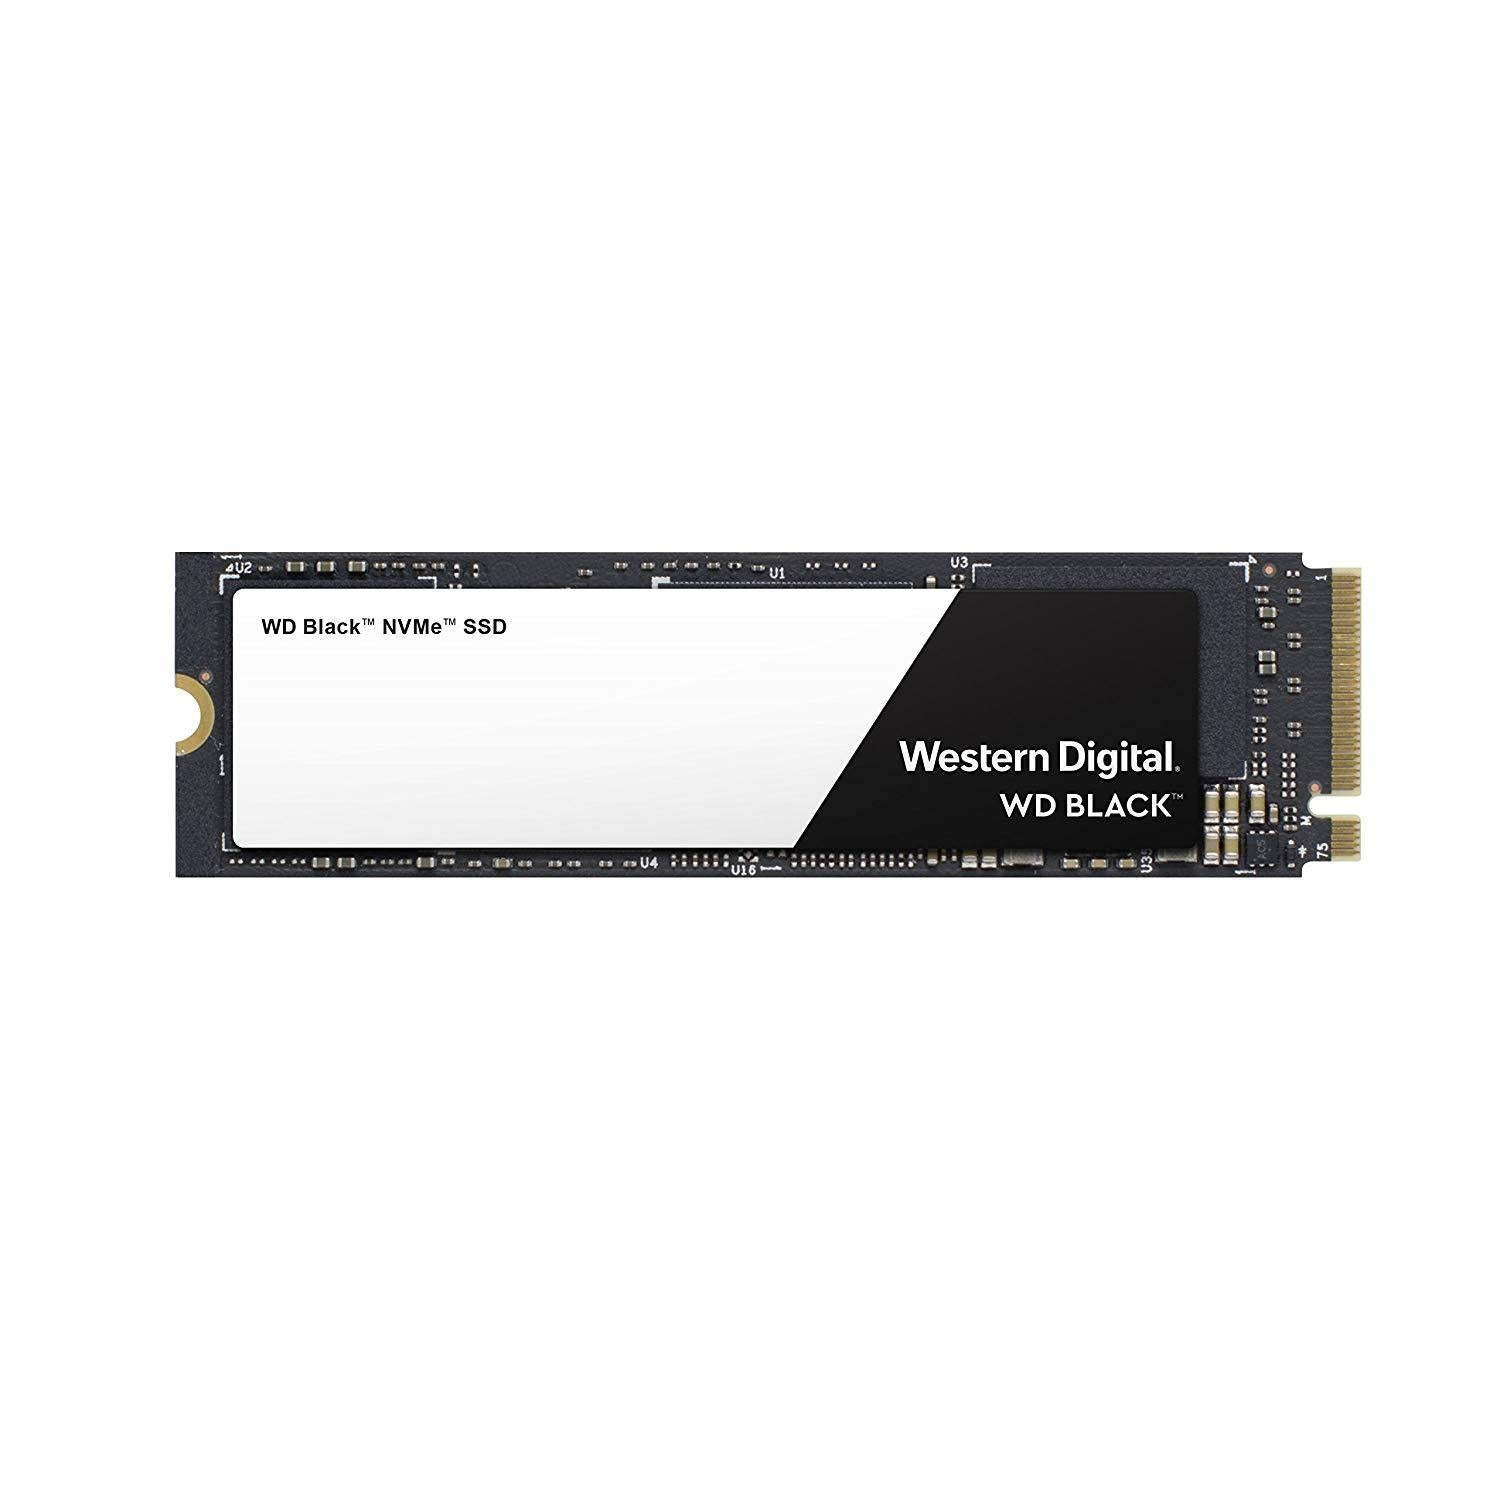 Western Digital WD Black 500GB Internal PCI-E M.2